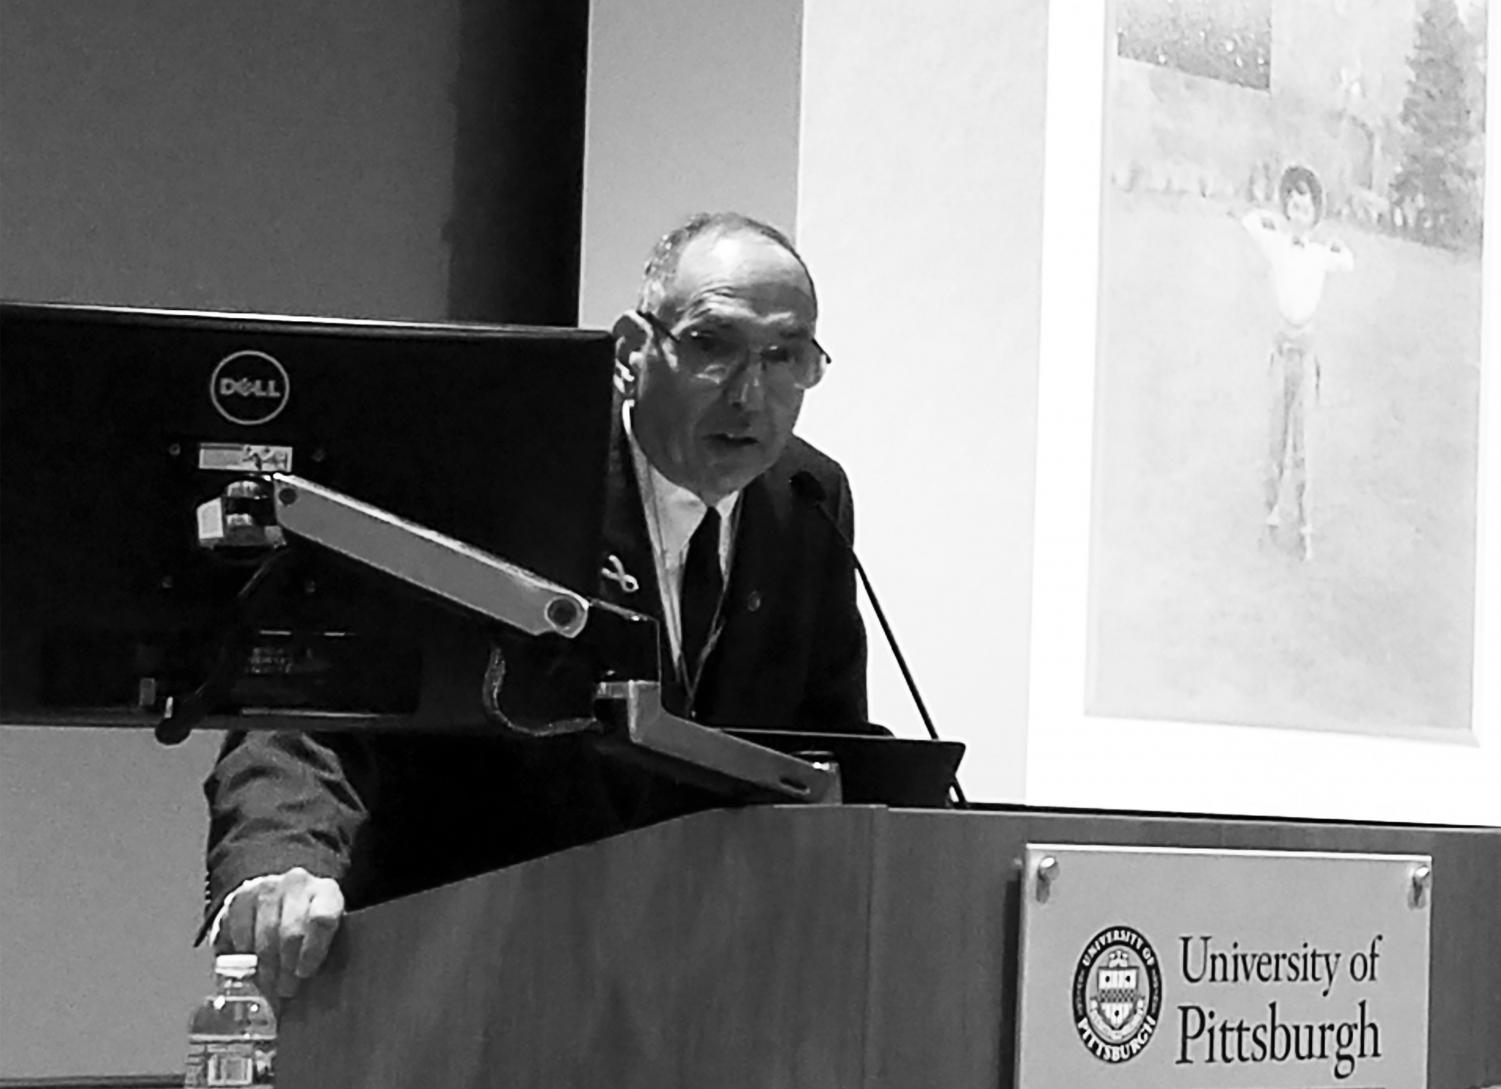 Astronomer David Levy speaks about his comet discoveries last Thursday at the Murtha Center.